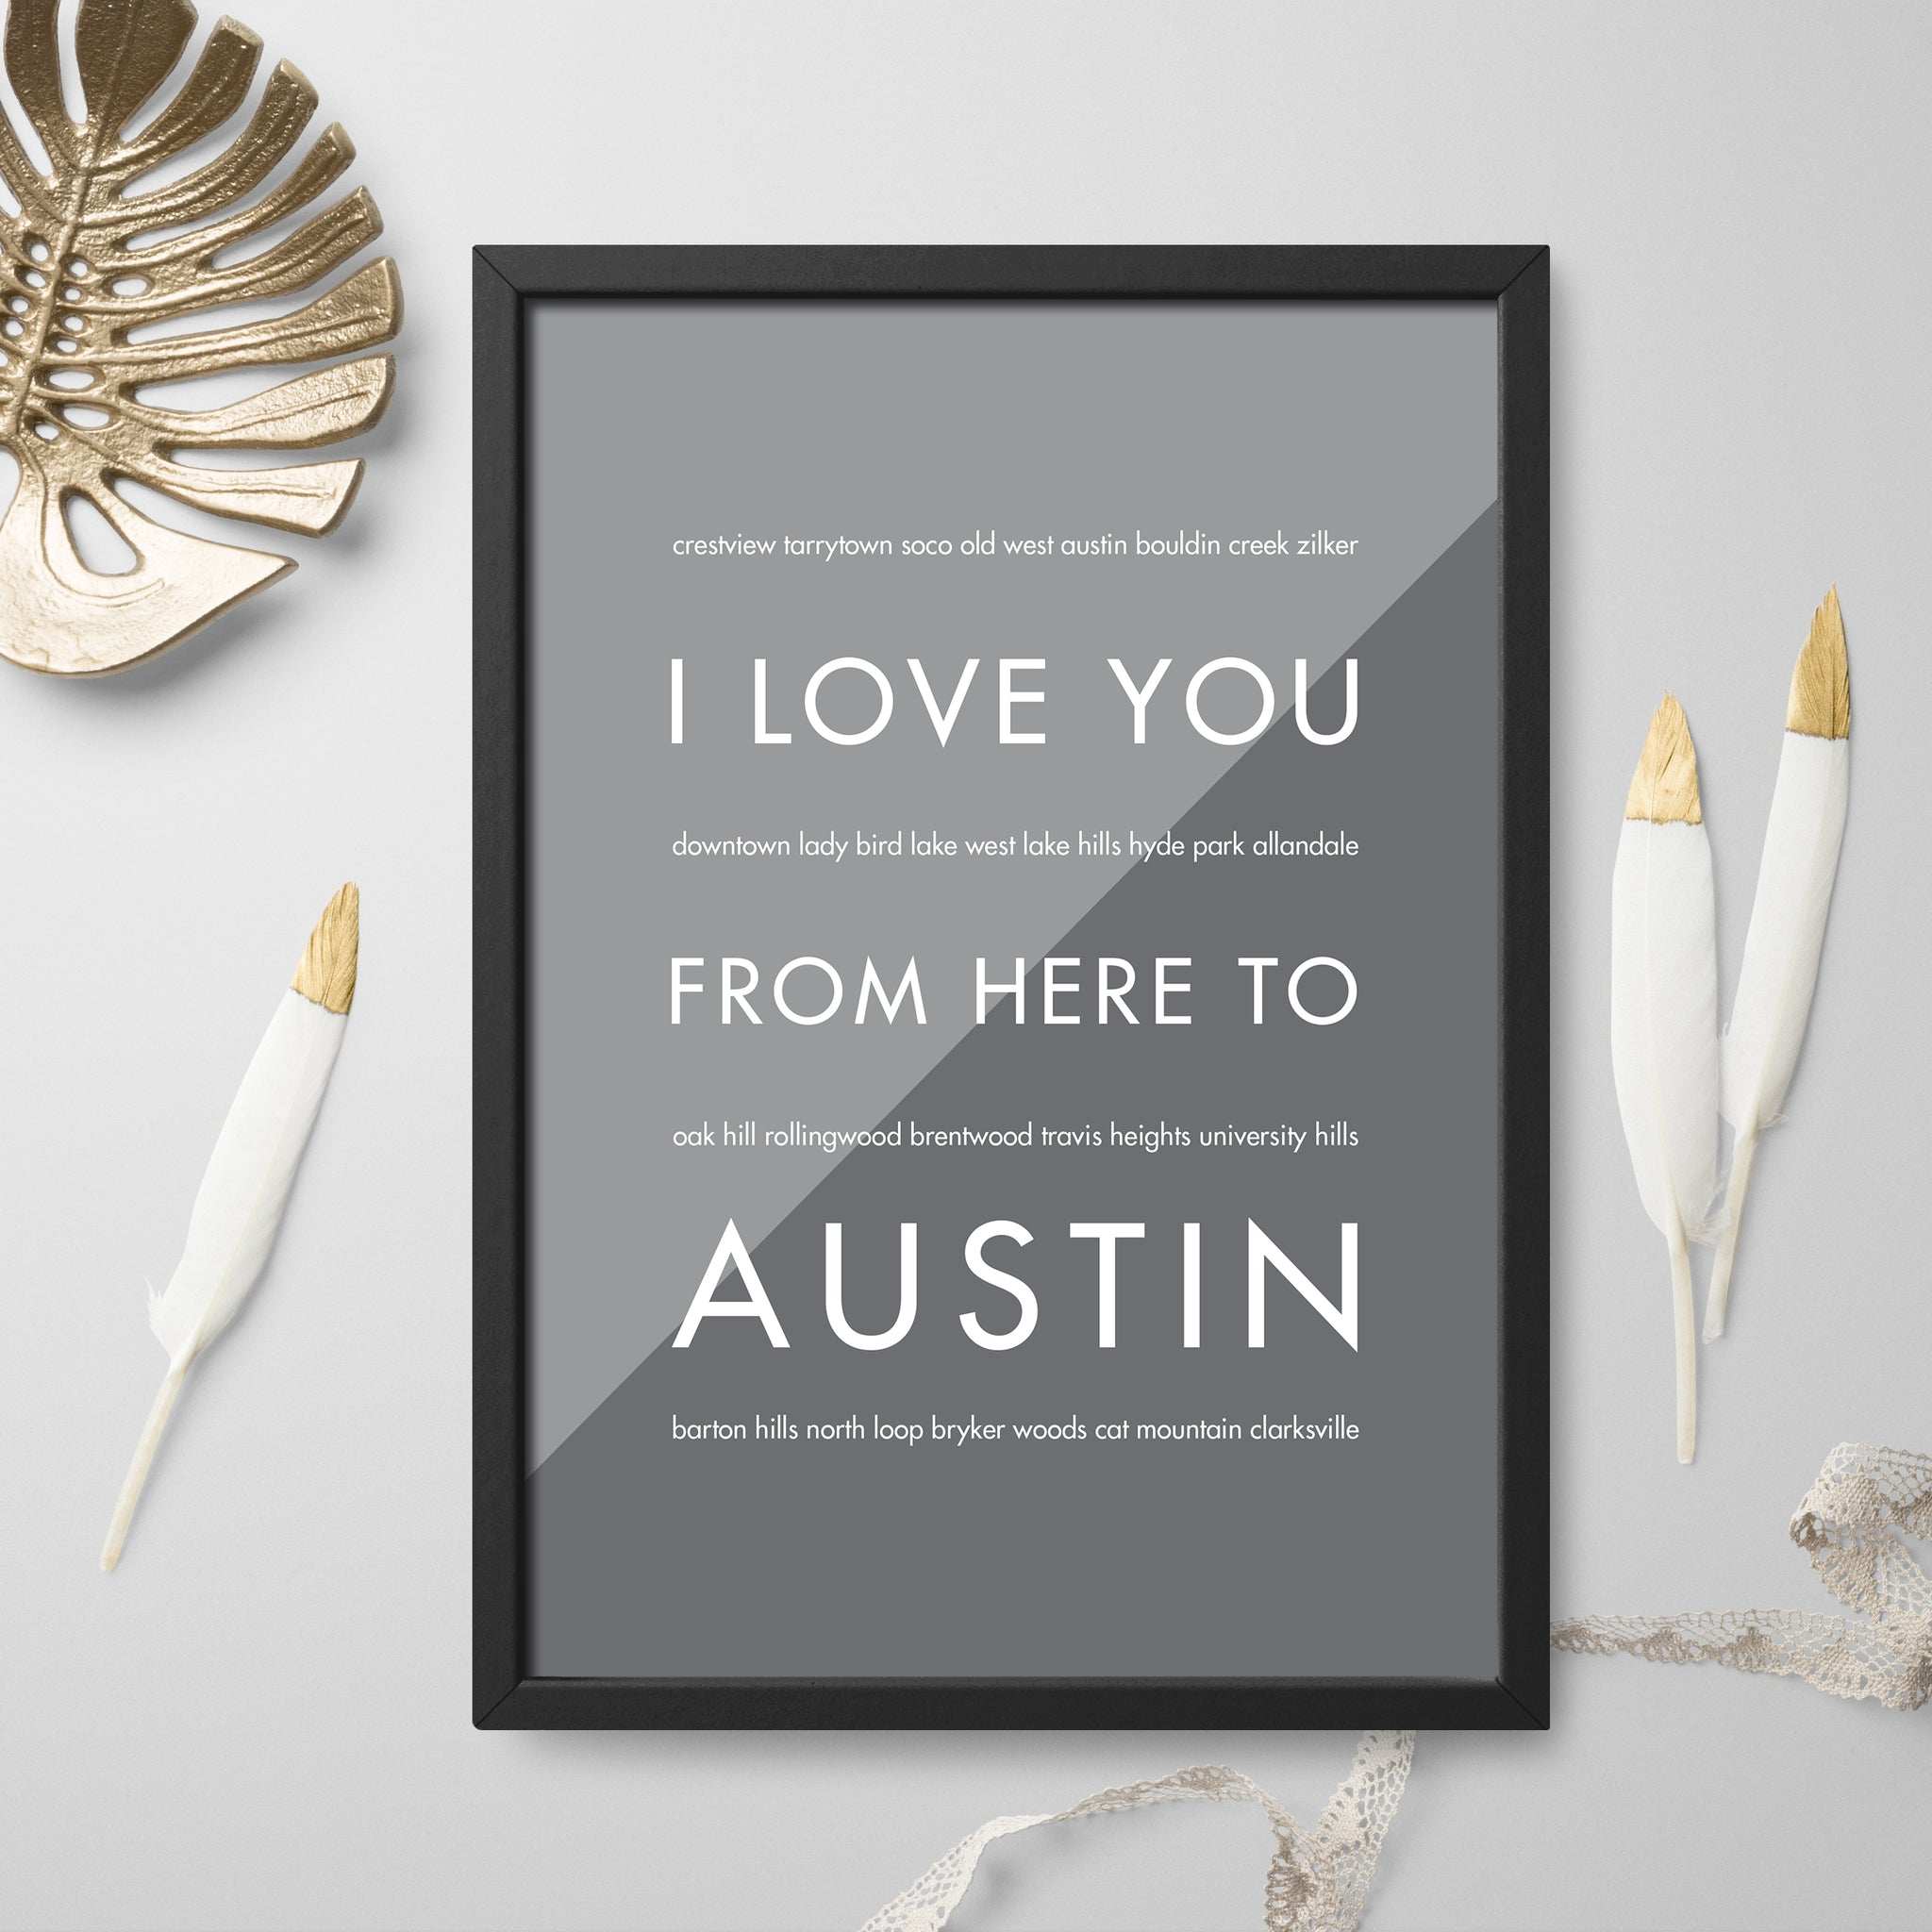 AUSTIN City Wall Art | Gift Idea | HopSkipJumpPaper